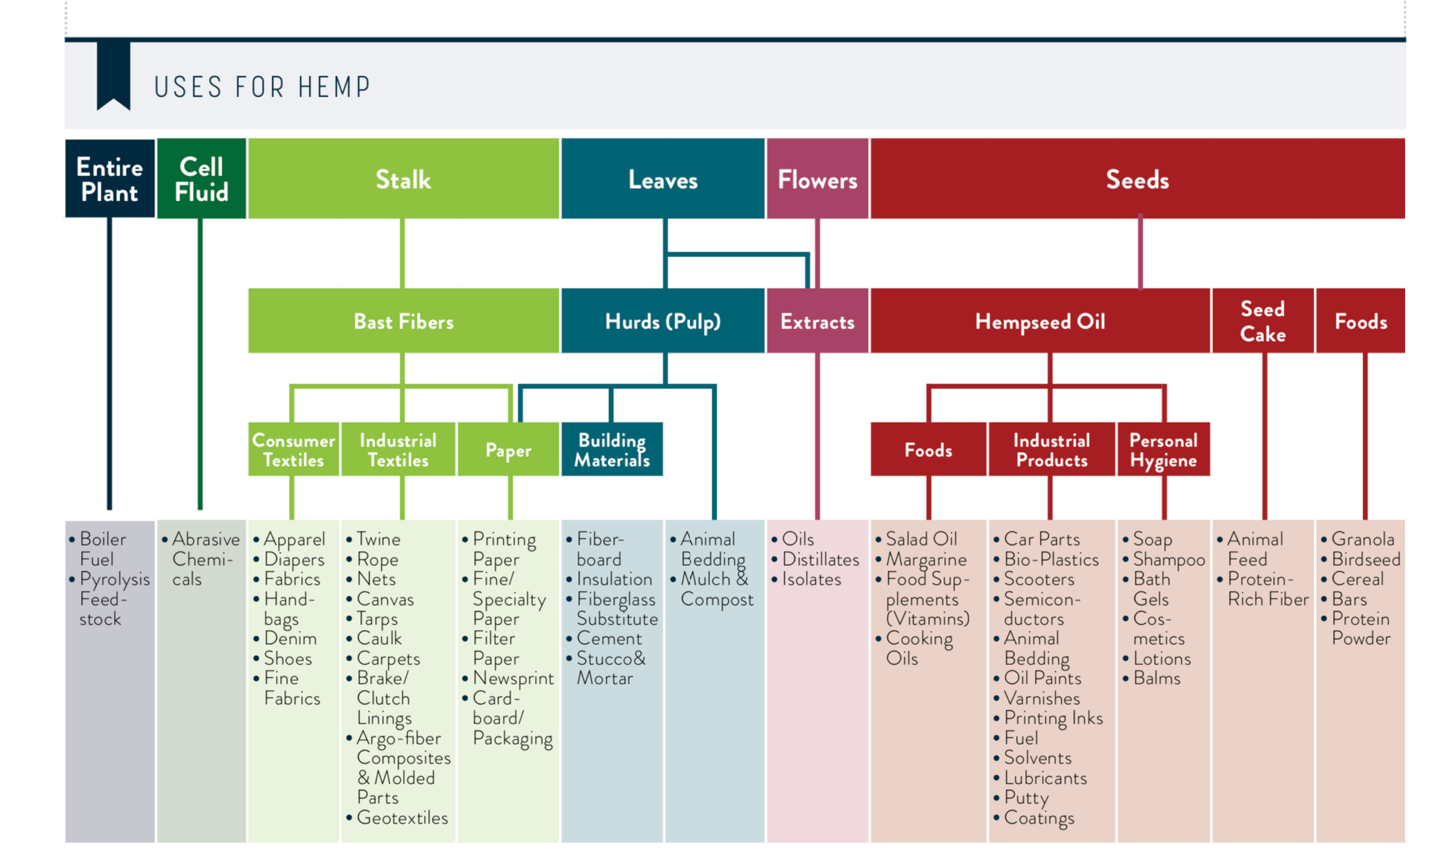 מקור תמונה: Hemp Business Journal/New Frontier Data